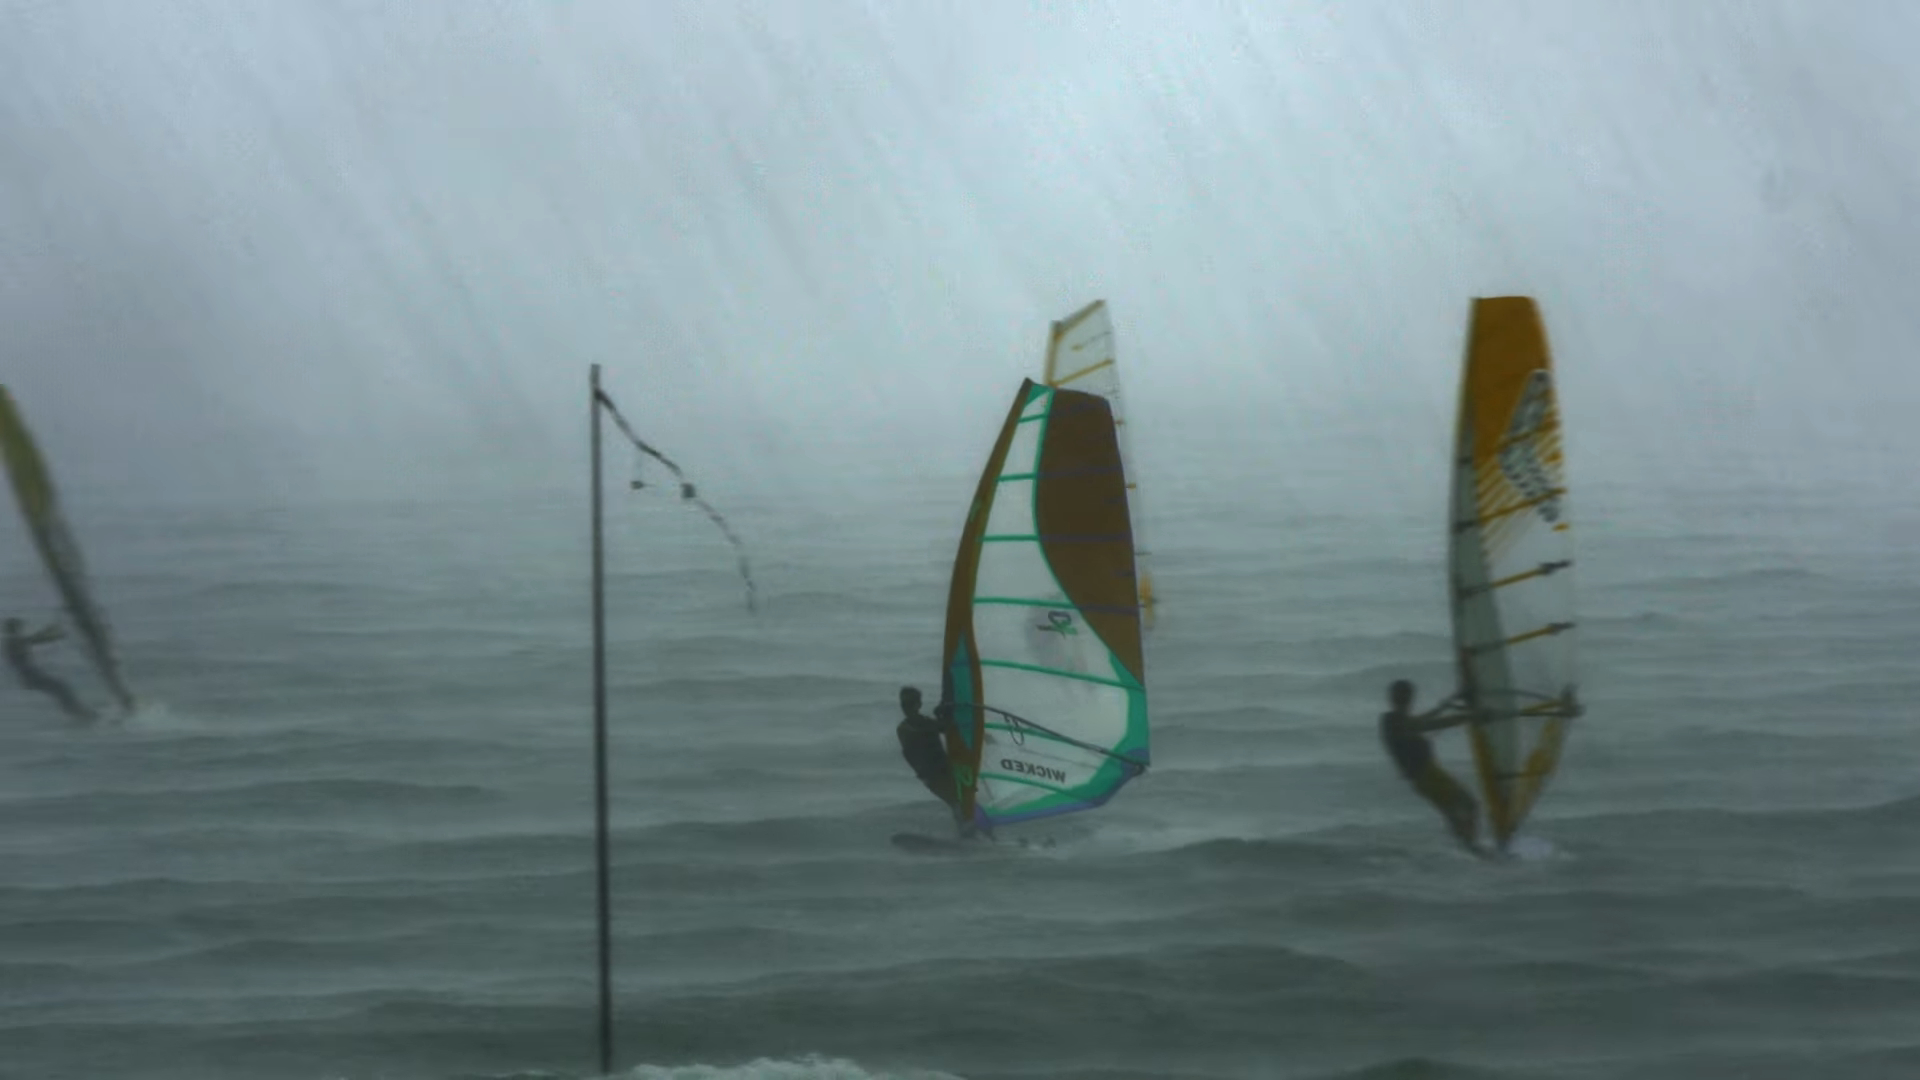 Windsurfing under a storm in East Coast Park, Singapore